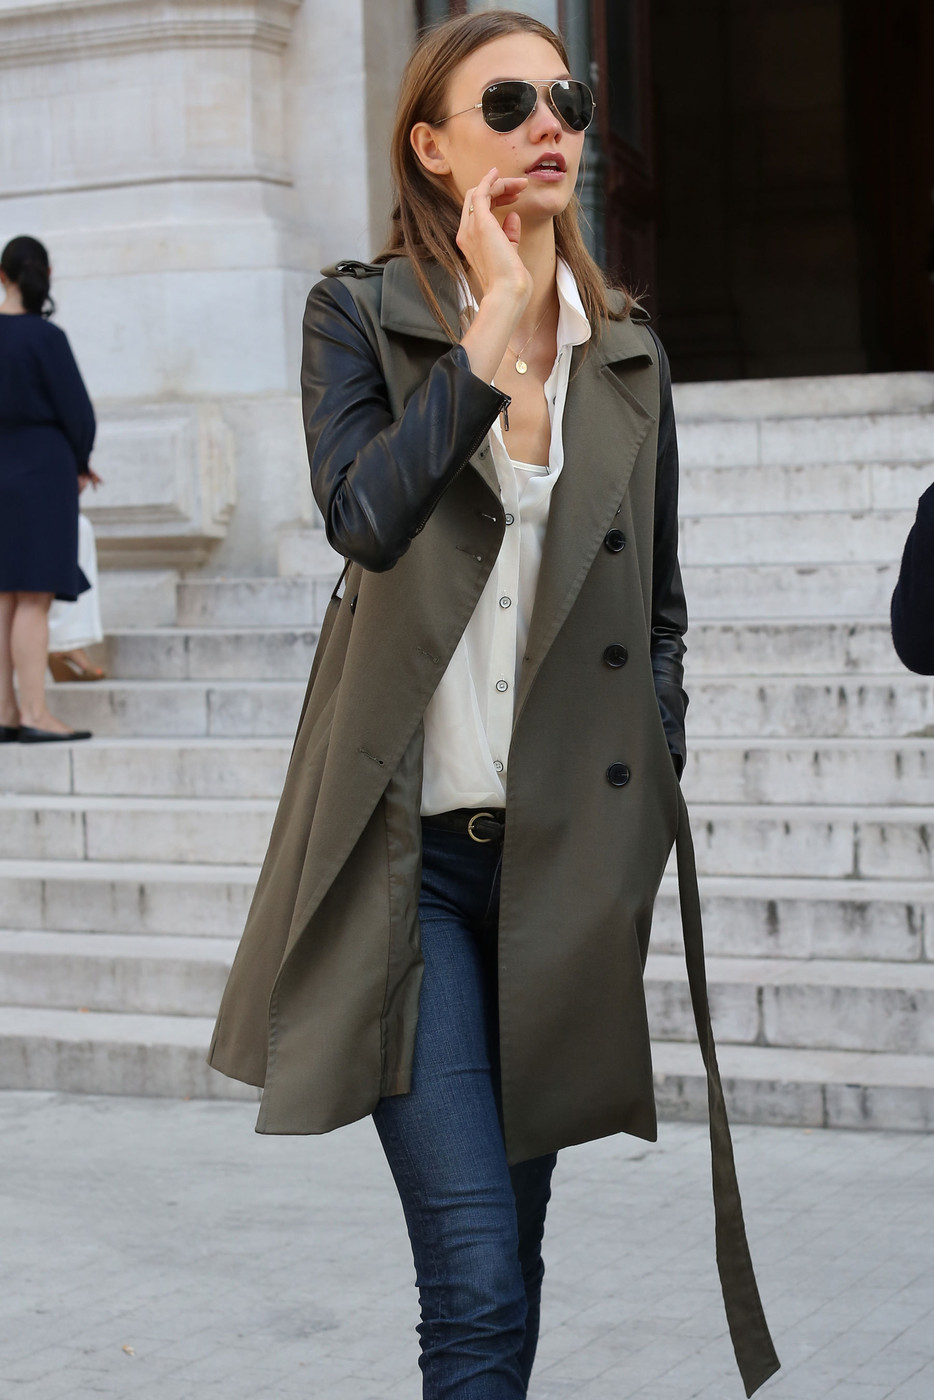 12 Fresh Ways to Wear a Trench Coat Inspired by Models Street